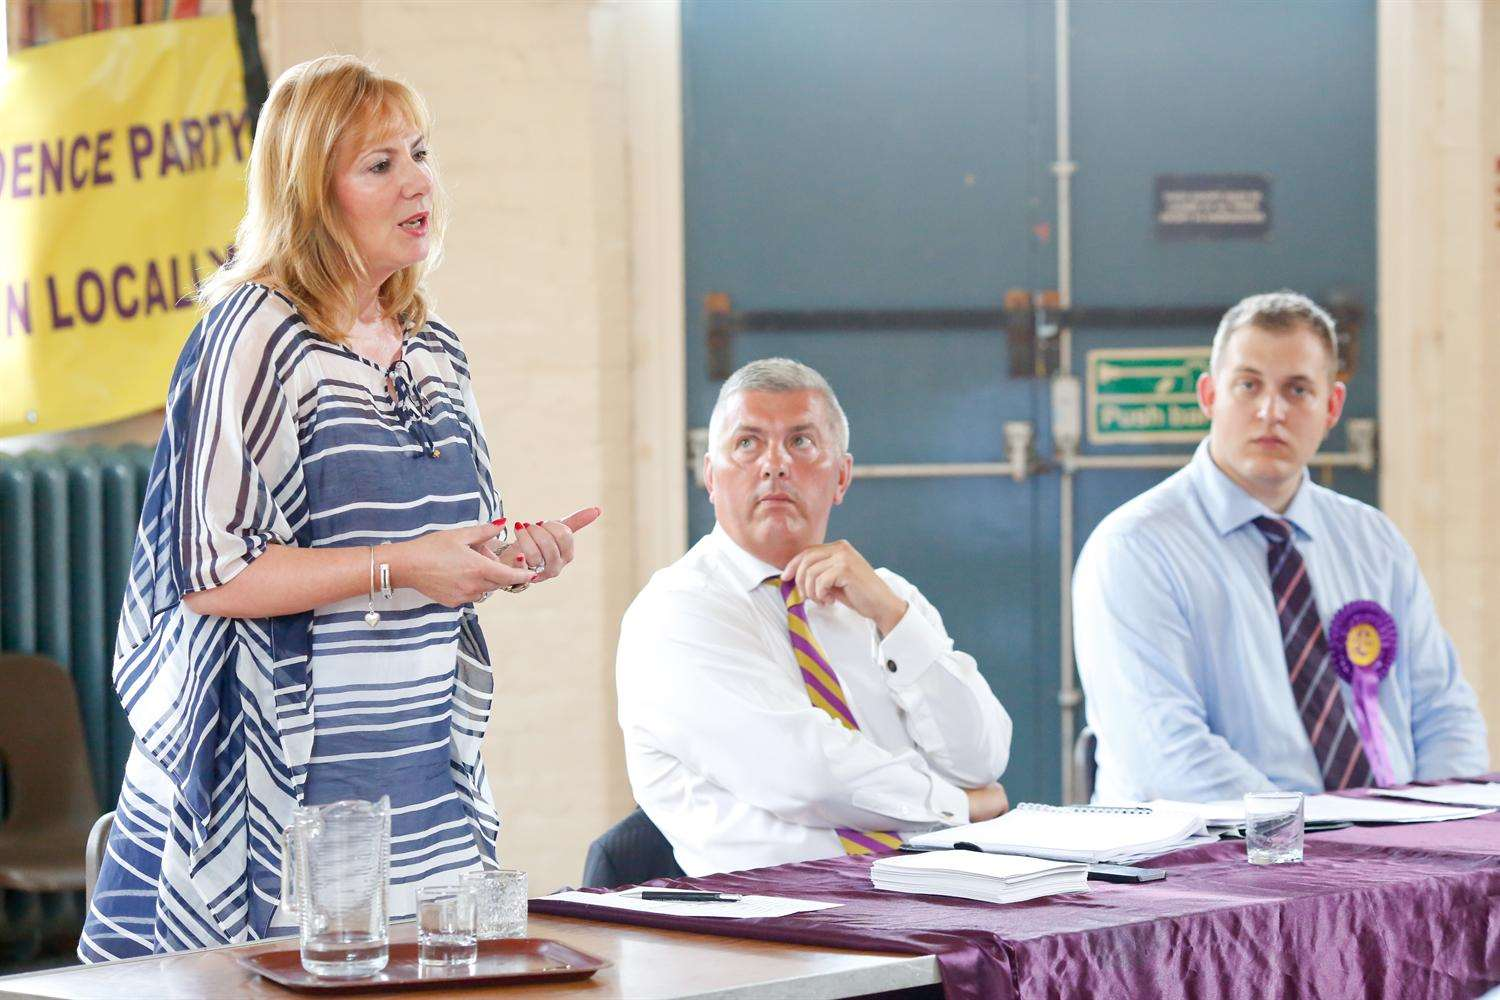 MEP Janice Atkinson addresses the meeting, watched by Cllr Eddie Powell and Jamie Kalmar